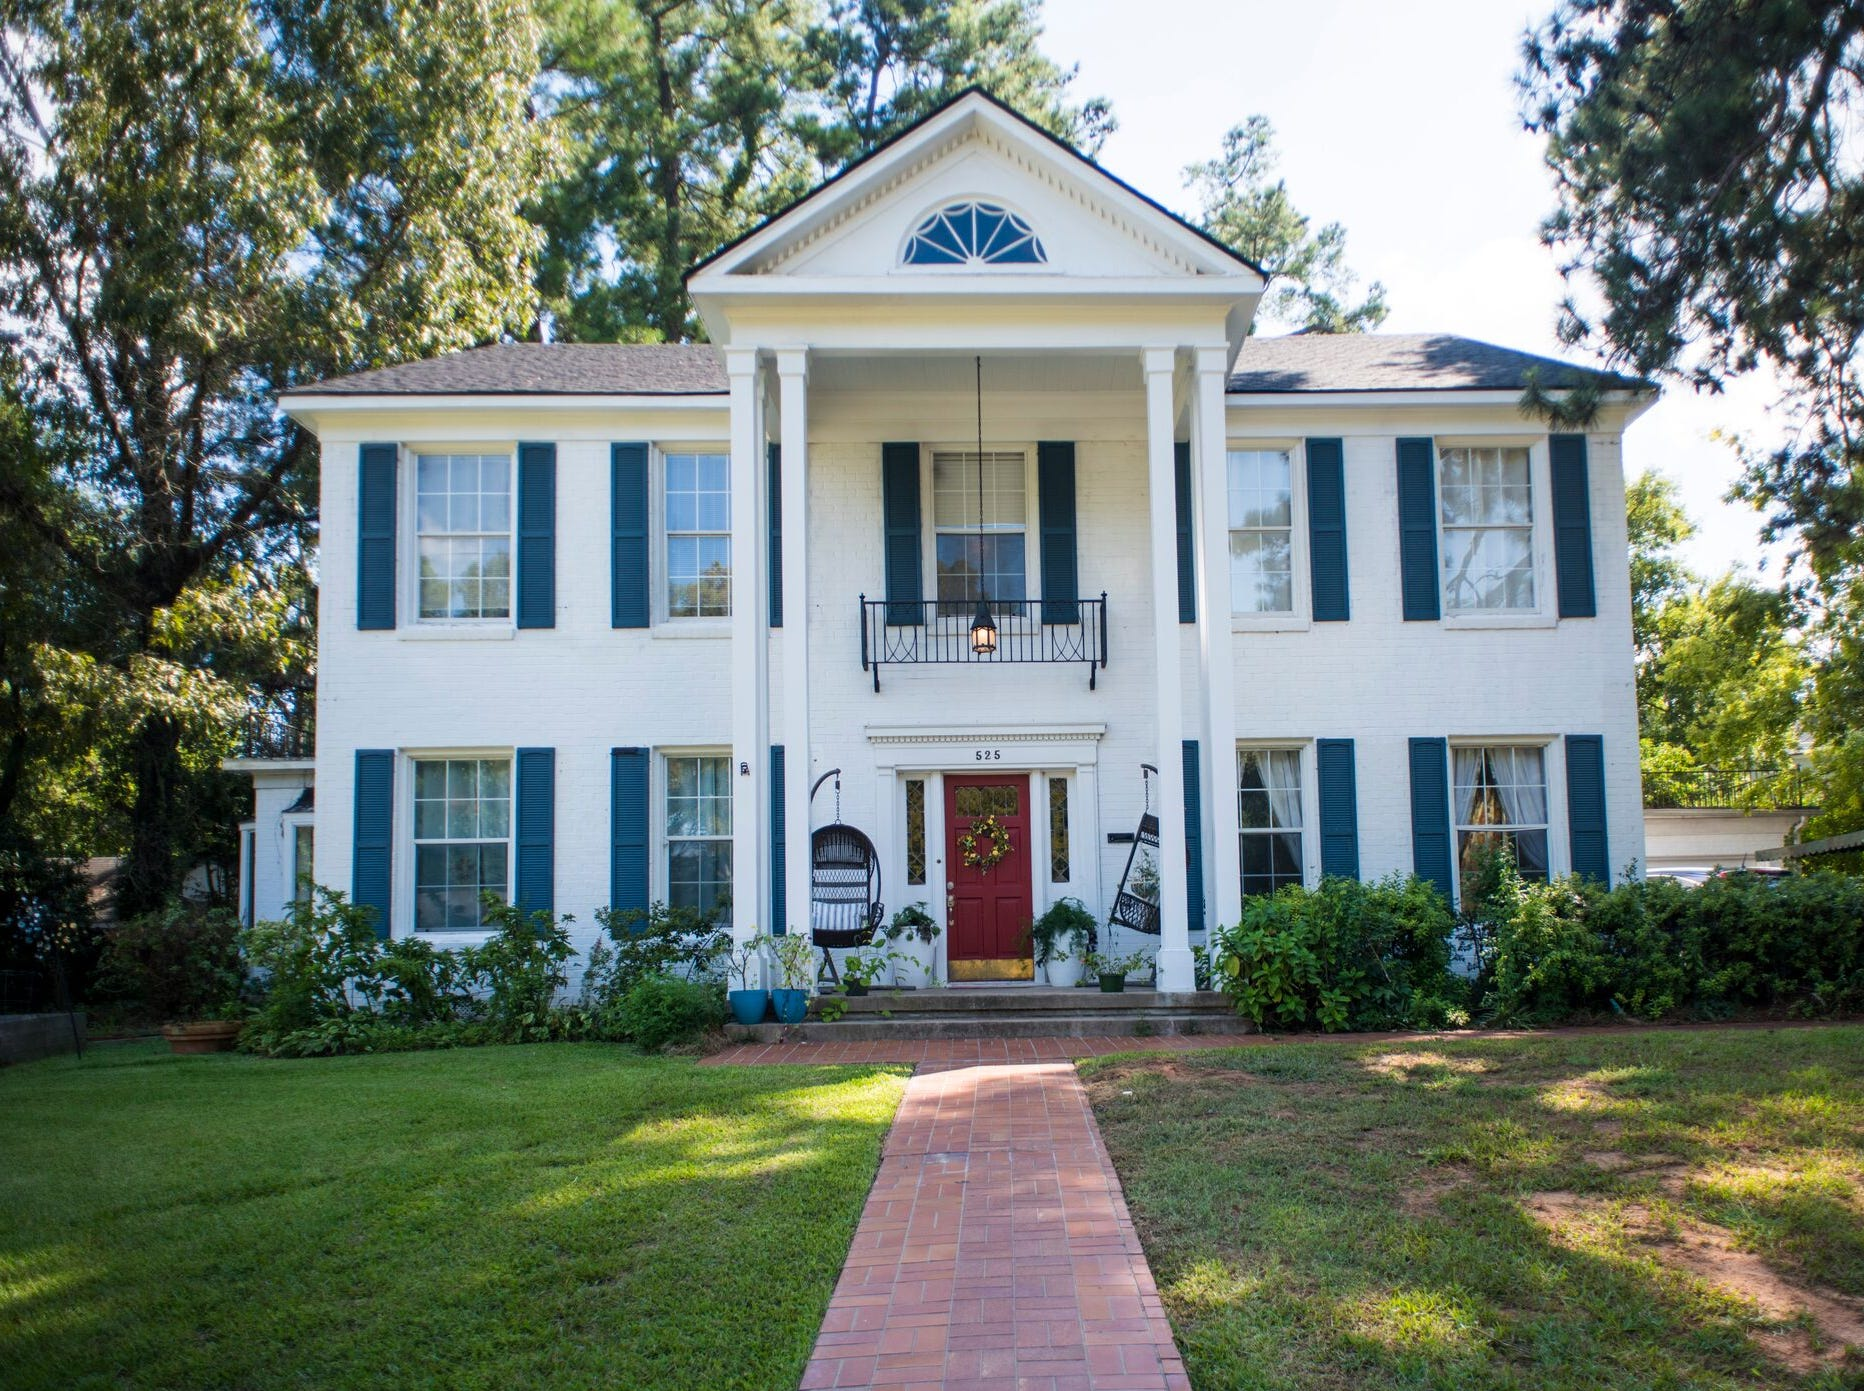 525 Linden St., Shreveport  Price: $350,000  Details: 4 bedrooms, 3 bathrooms, 3,960 square feet  Special features: Charming South Highlands historic home with library with original wood paneling and fireplace,  spacious bedrooms.   Contact: Cheryl Flook, 423-1920